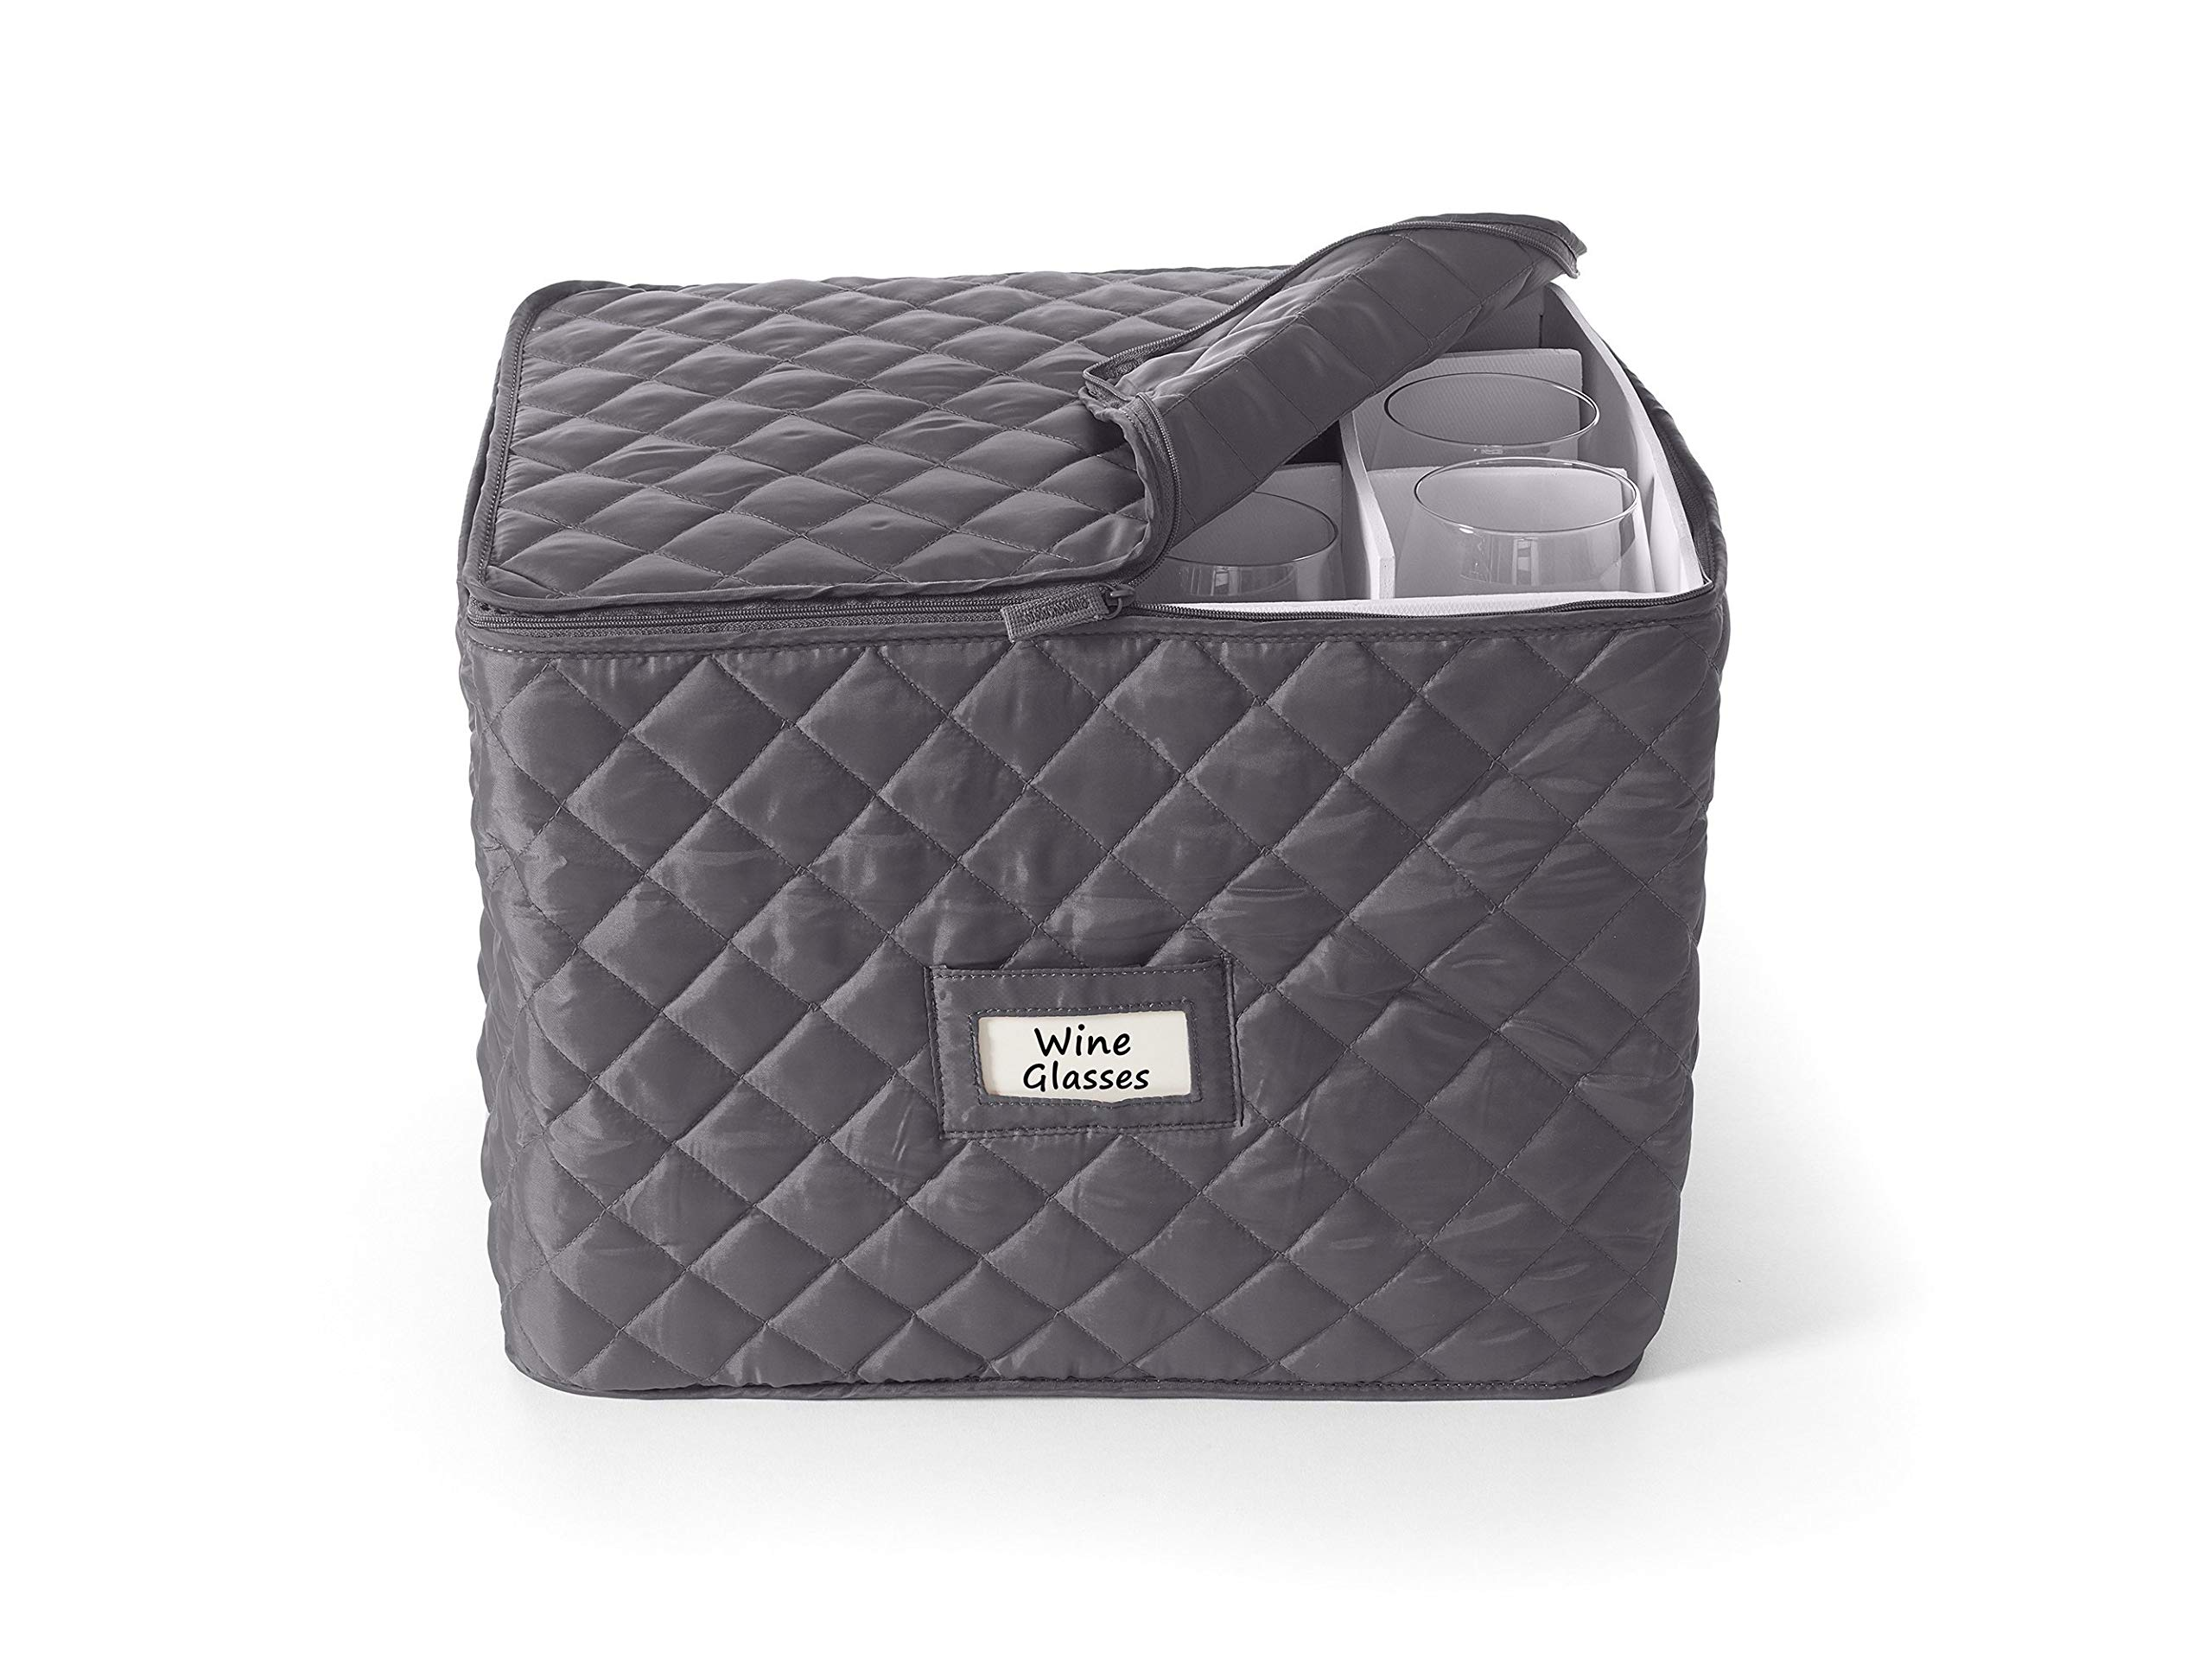 Covermates - Stemware Storage 15L x 12W x 12H - Diamond Collection - 2 YR Warranty - Year Around Protection - Slate by Covermates